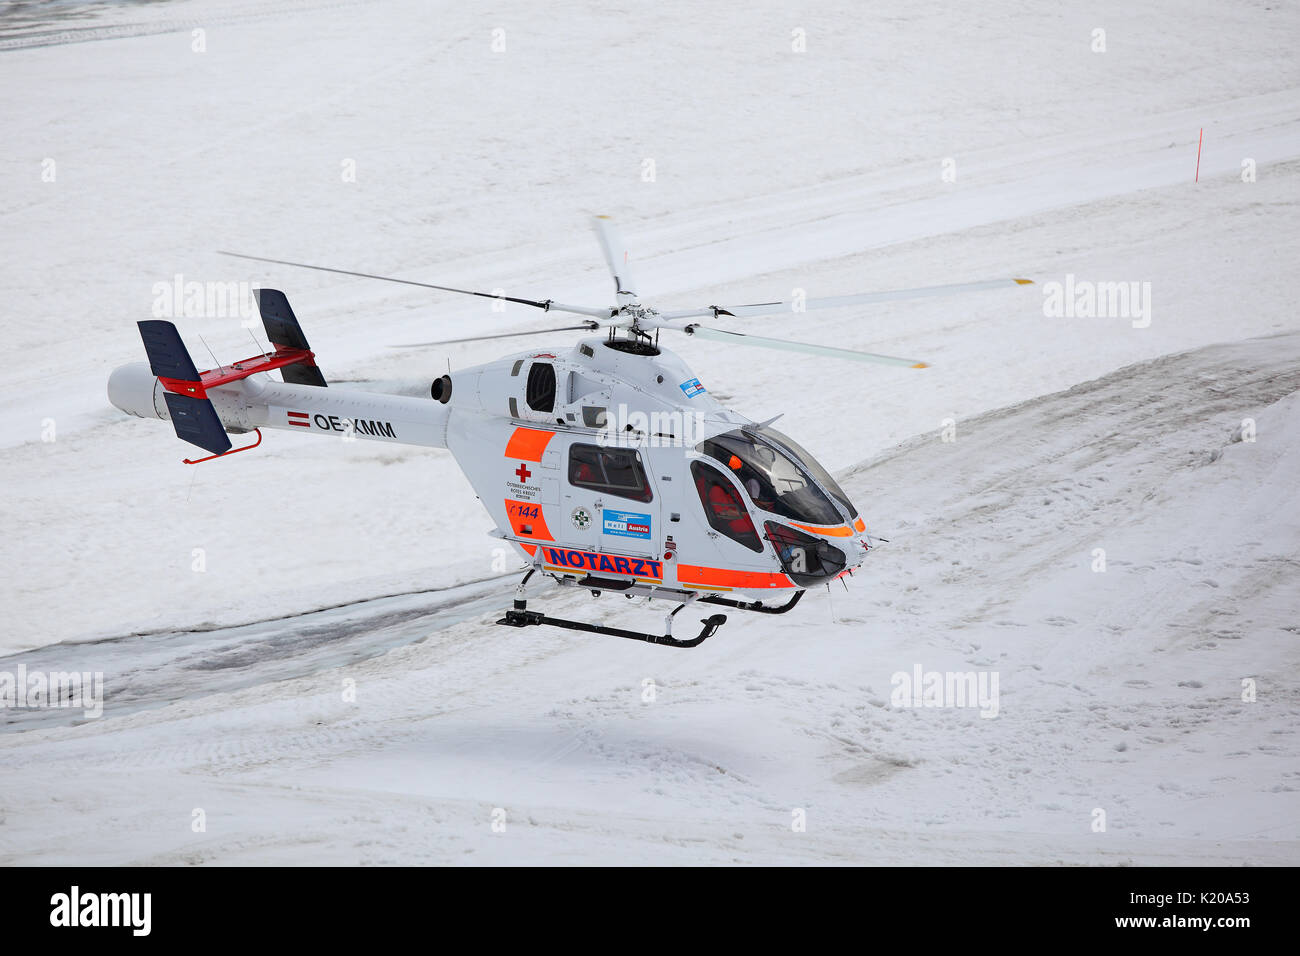 Rescue helicopter of the Austrian Red Cross in operation on the Dachstein glacier, mountain station on the Dachstein - Stock Image